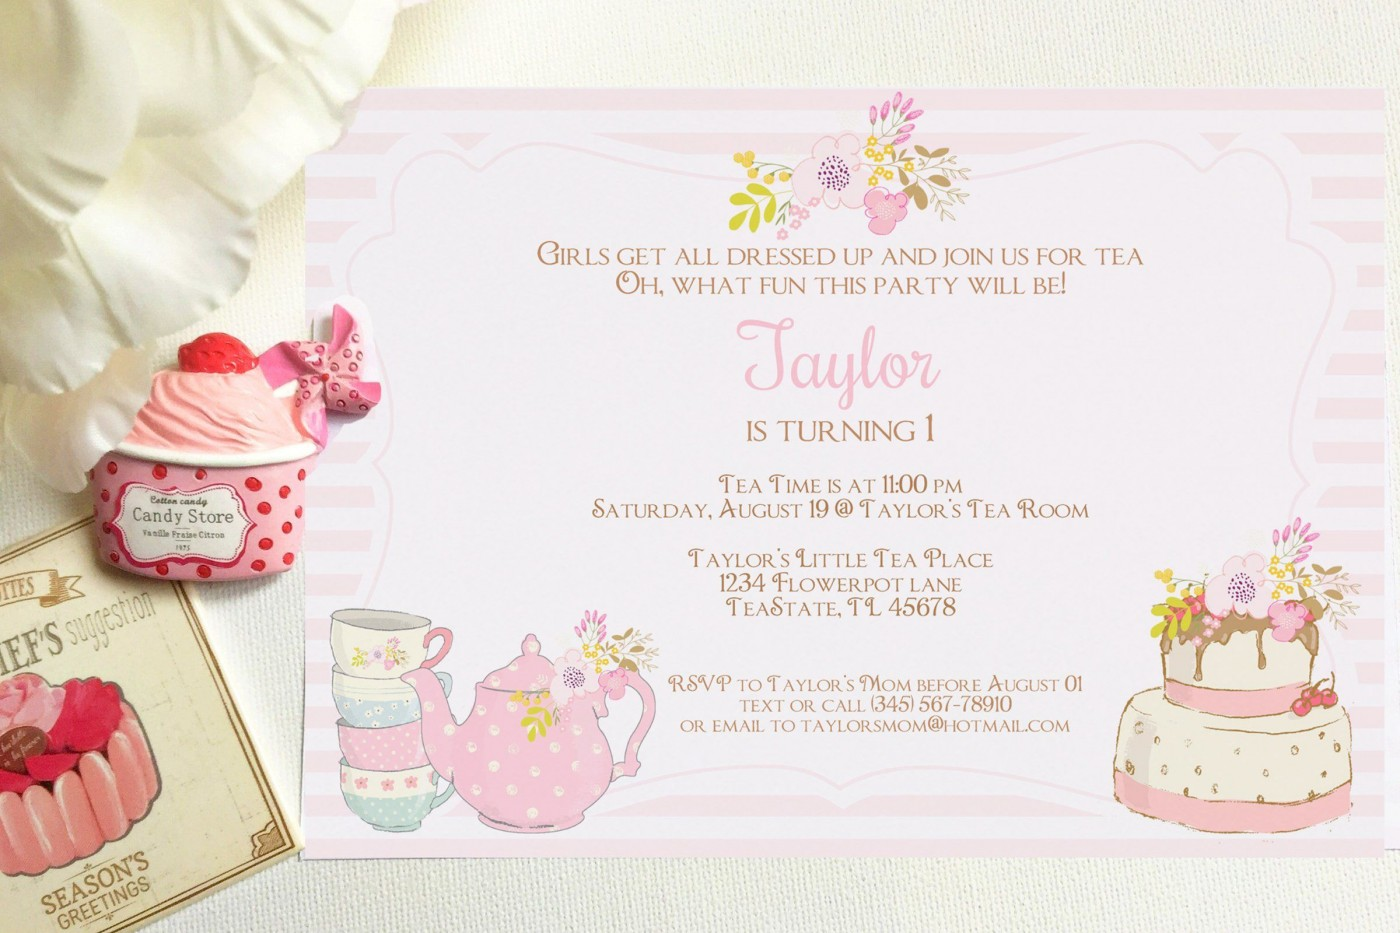 008 Outstanding Tea Party Invitation Template High Definition  Card Victorian Wording For Bridal Shower1400